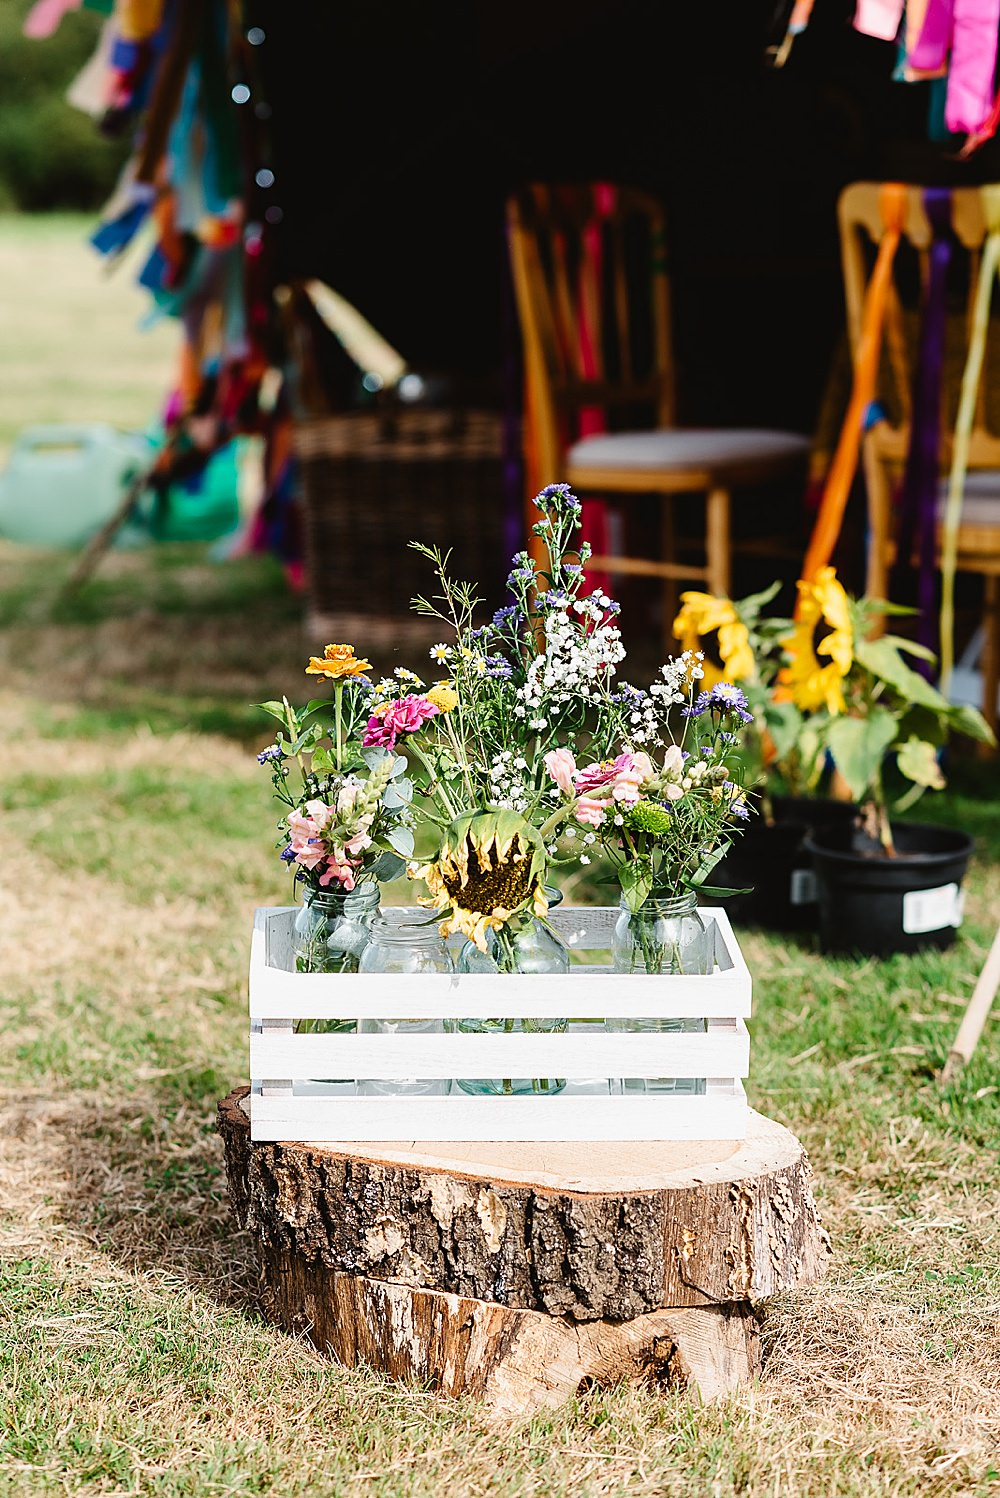 Wooden Crate Flowers Tree Log DIY Tipi Wedding Fiona Kelly Photography